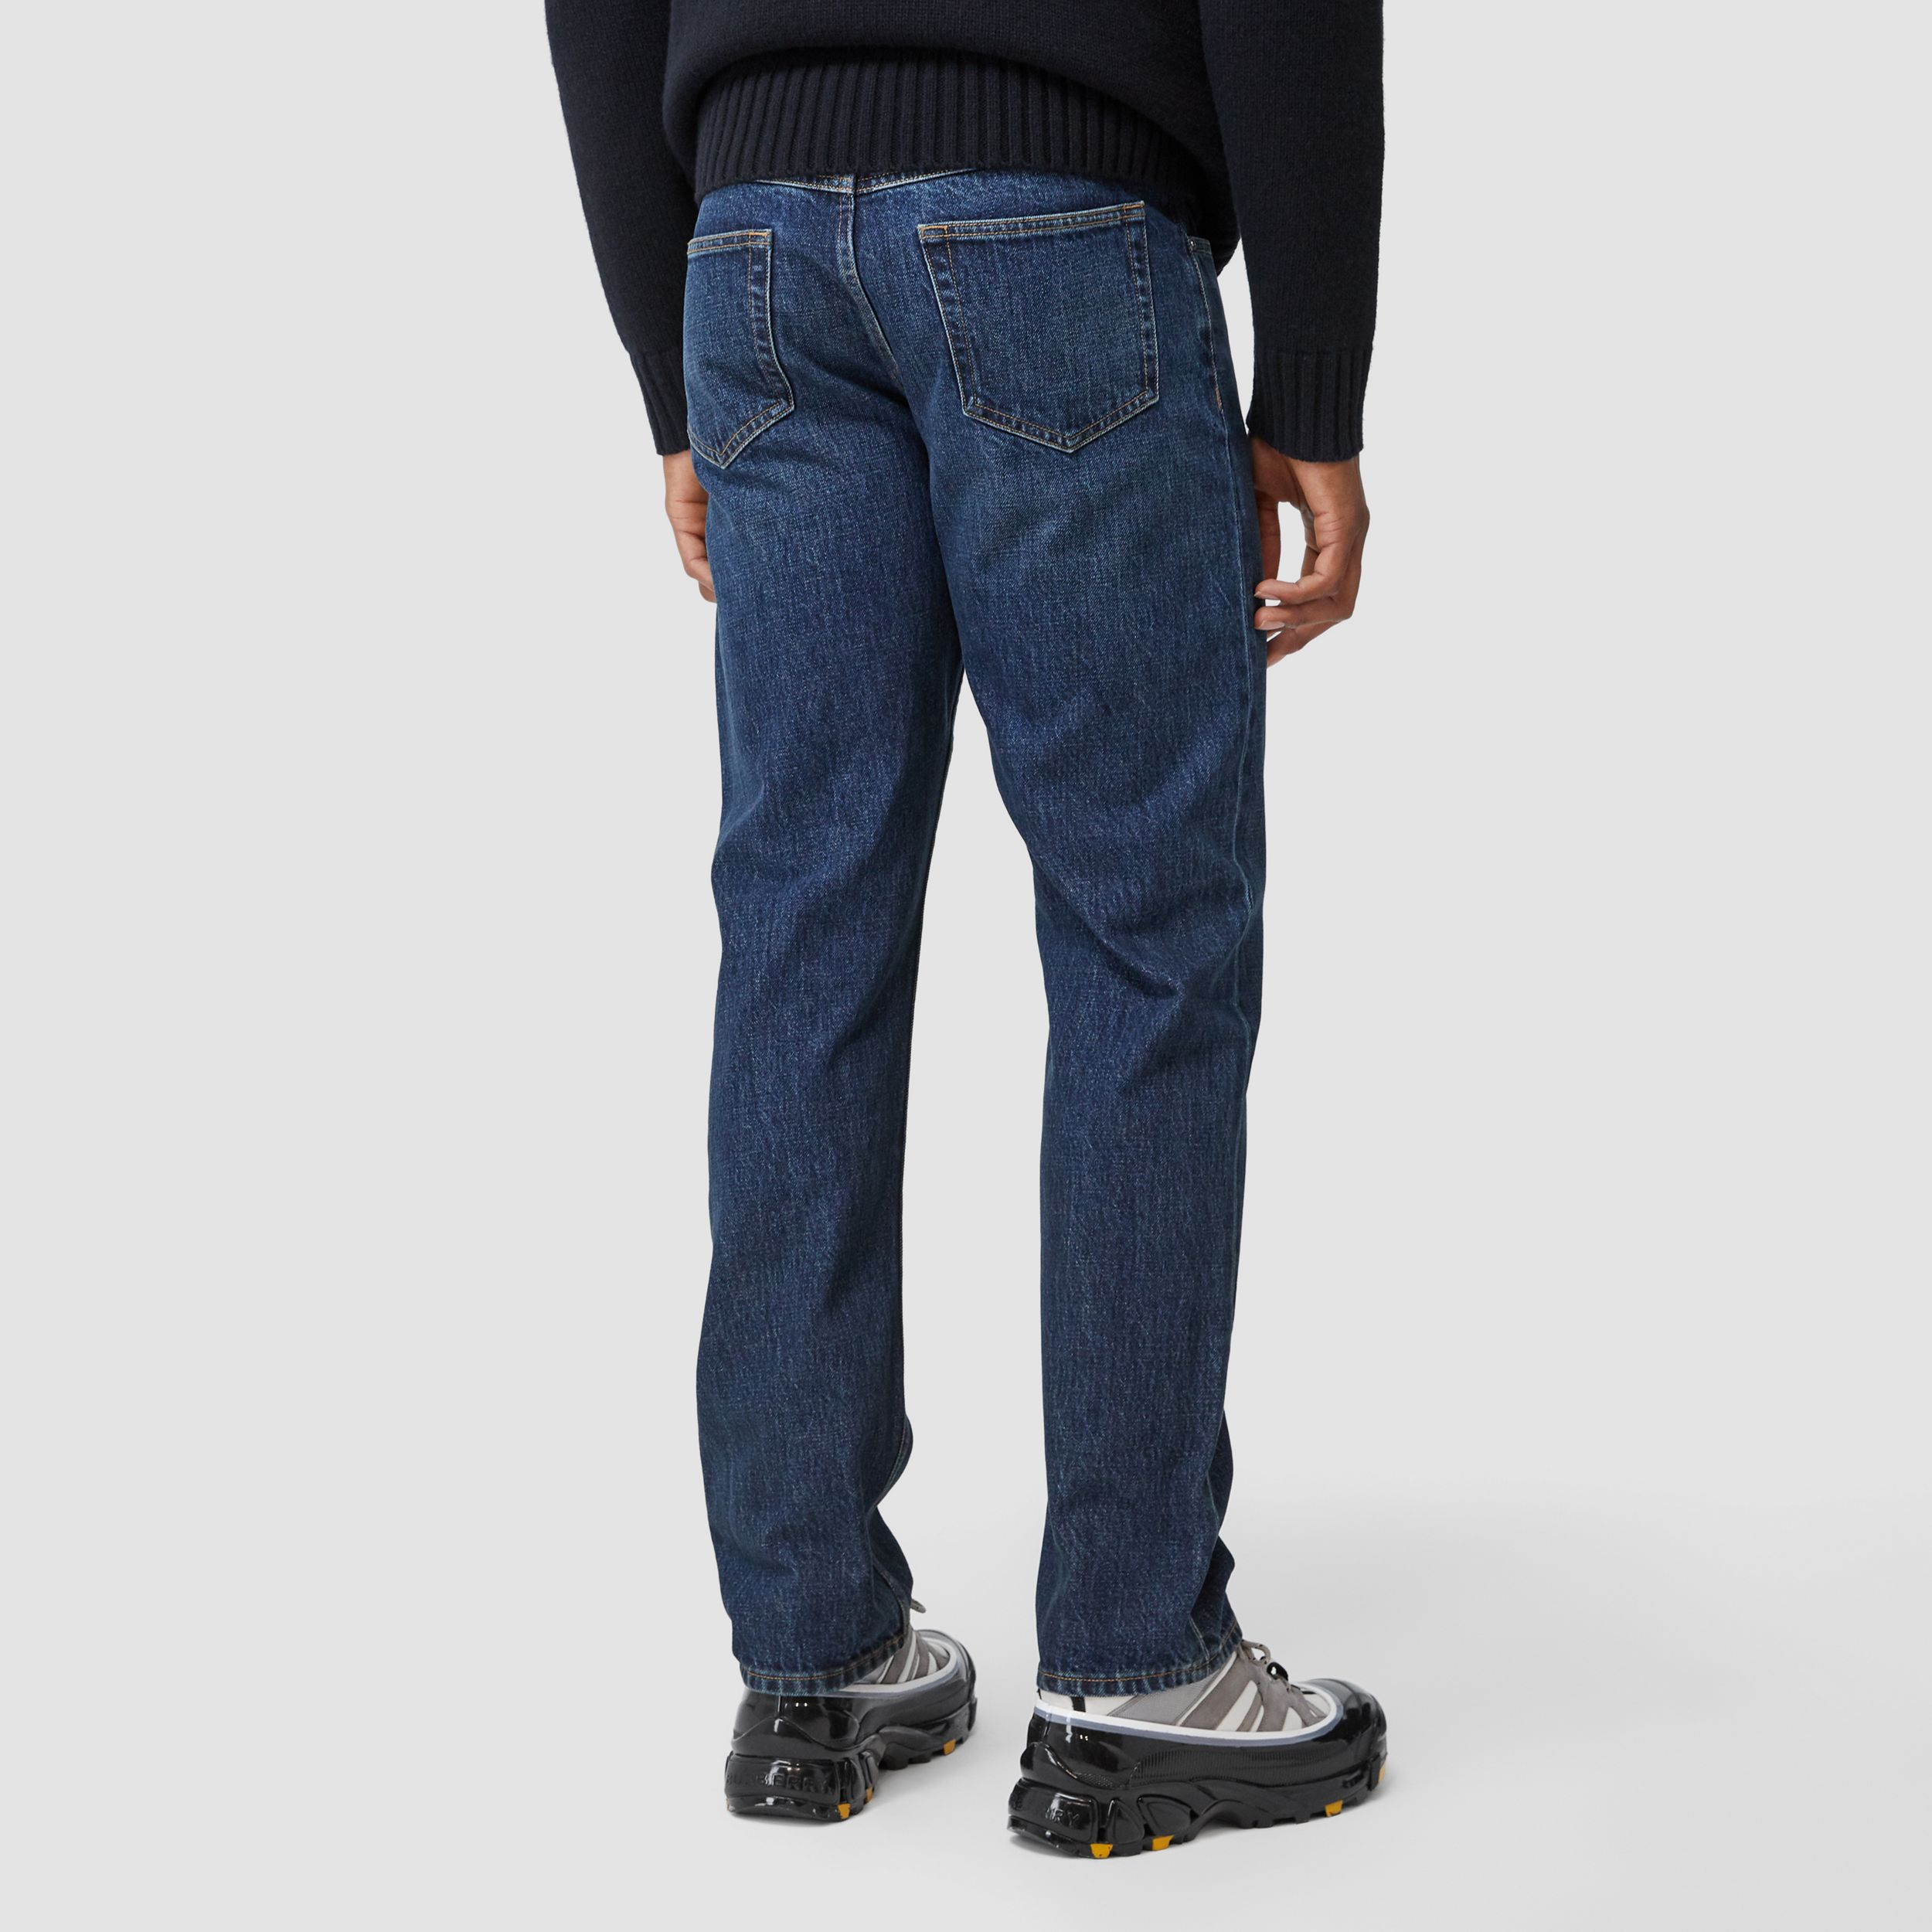 Straight Fit Washed Jeans in Dark Indigo - Men | Burberry - 3